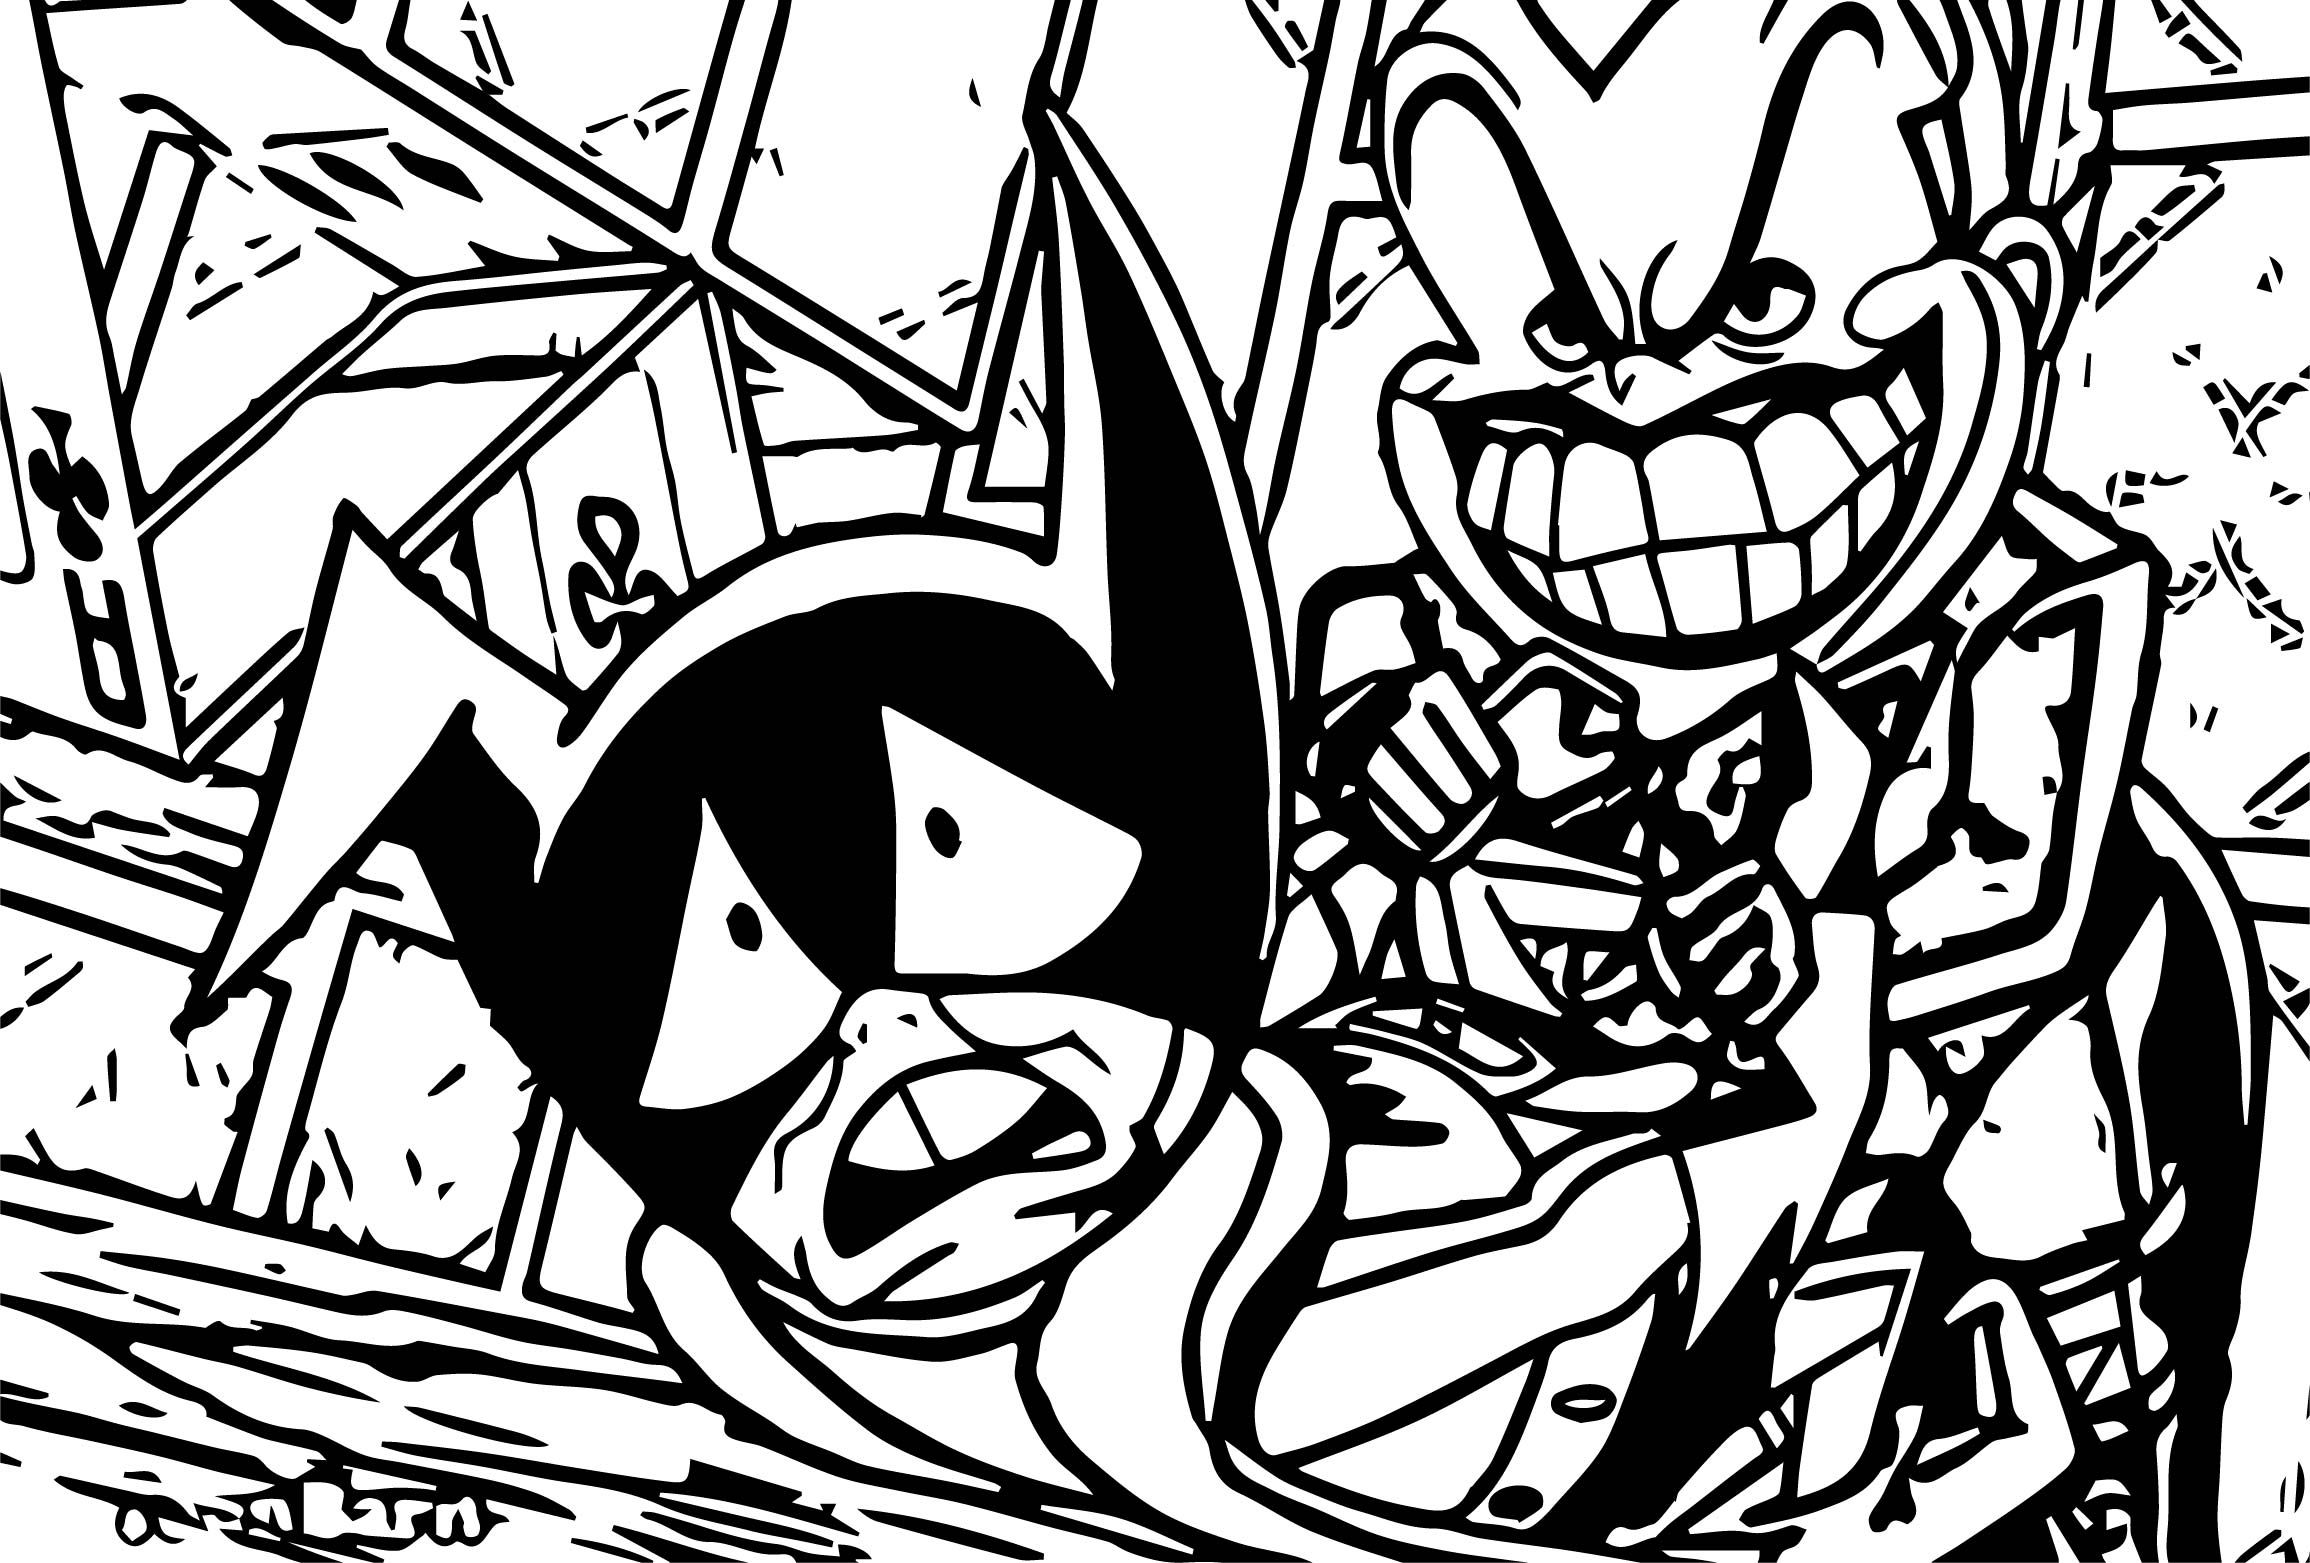 Cool Emperor Joker Attacks Batman The Brave And The Bold On Cartoon Network Coloring Page Lego Coloring Pages Coloring Pages Cartoon Coloring Pages